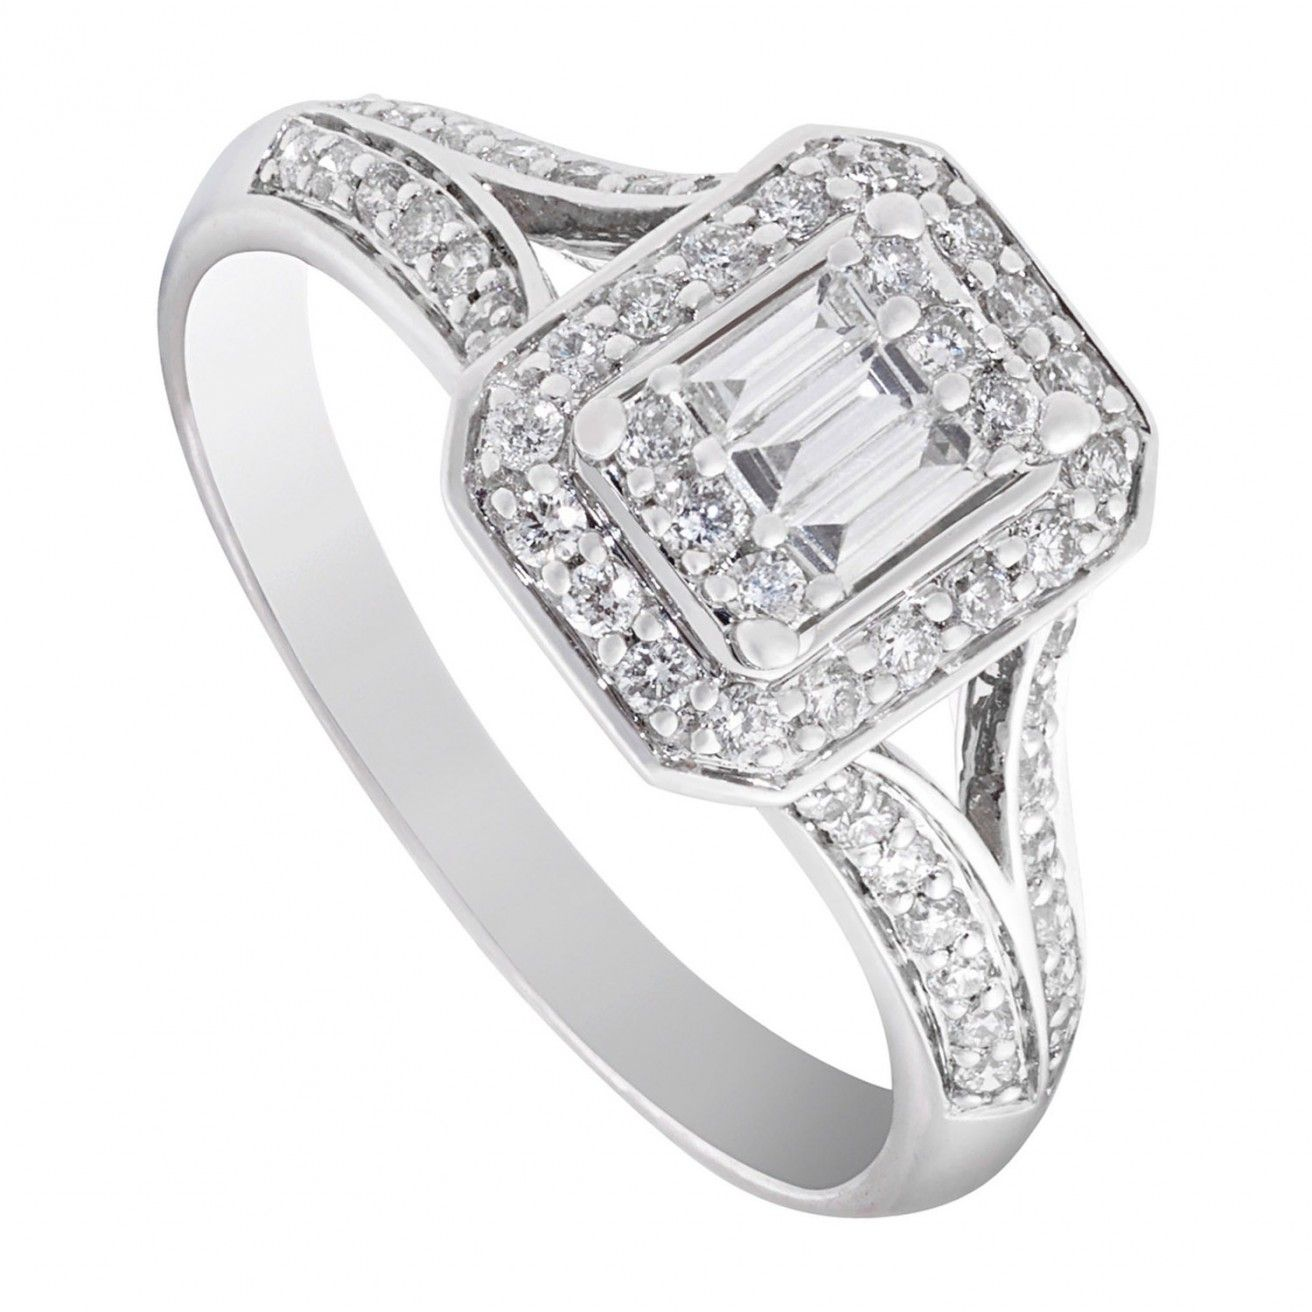 White Gold Wedding Band Melbourne: 9ct White Gold 0.50 Carat Diamond Split Shoulder Ring